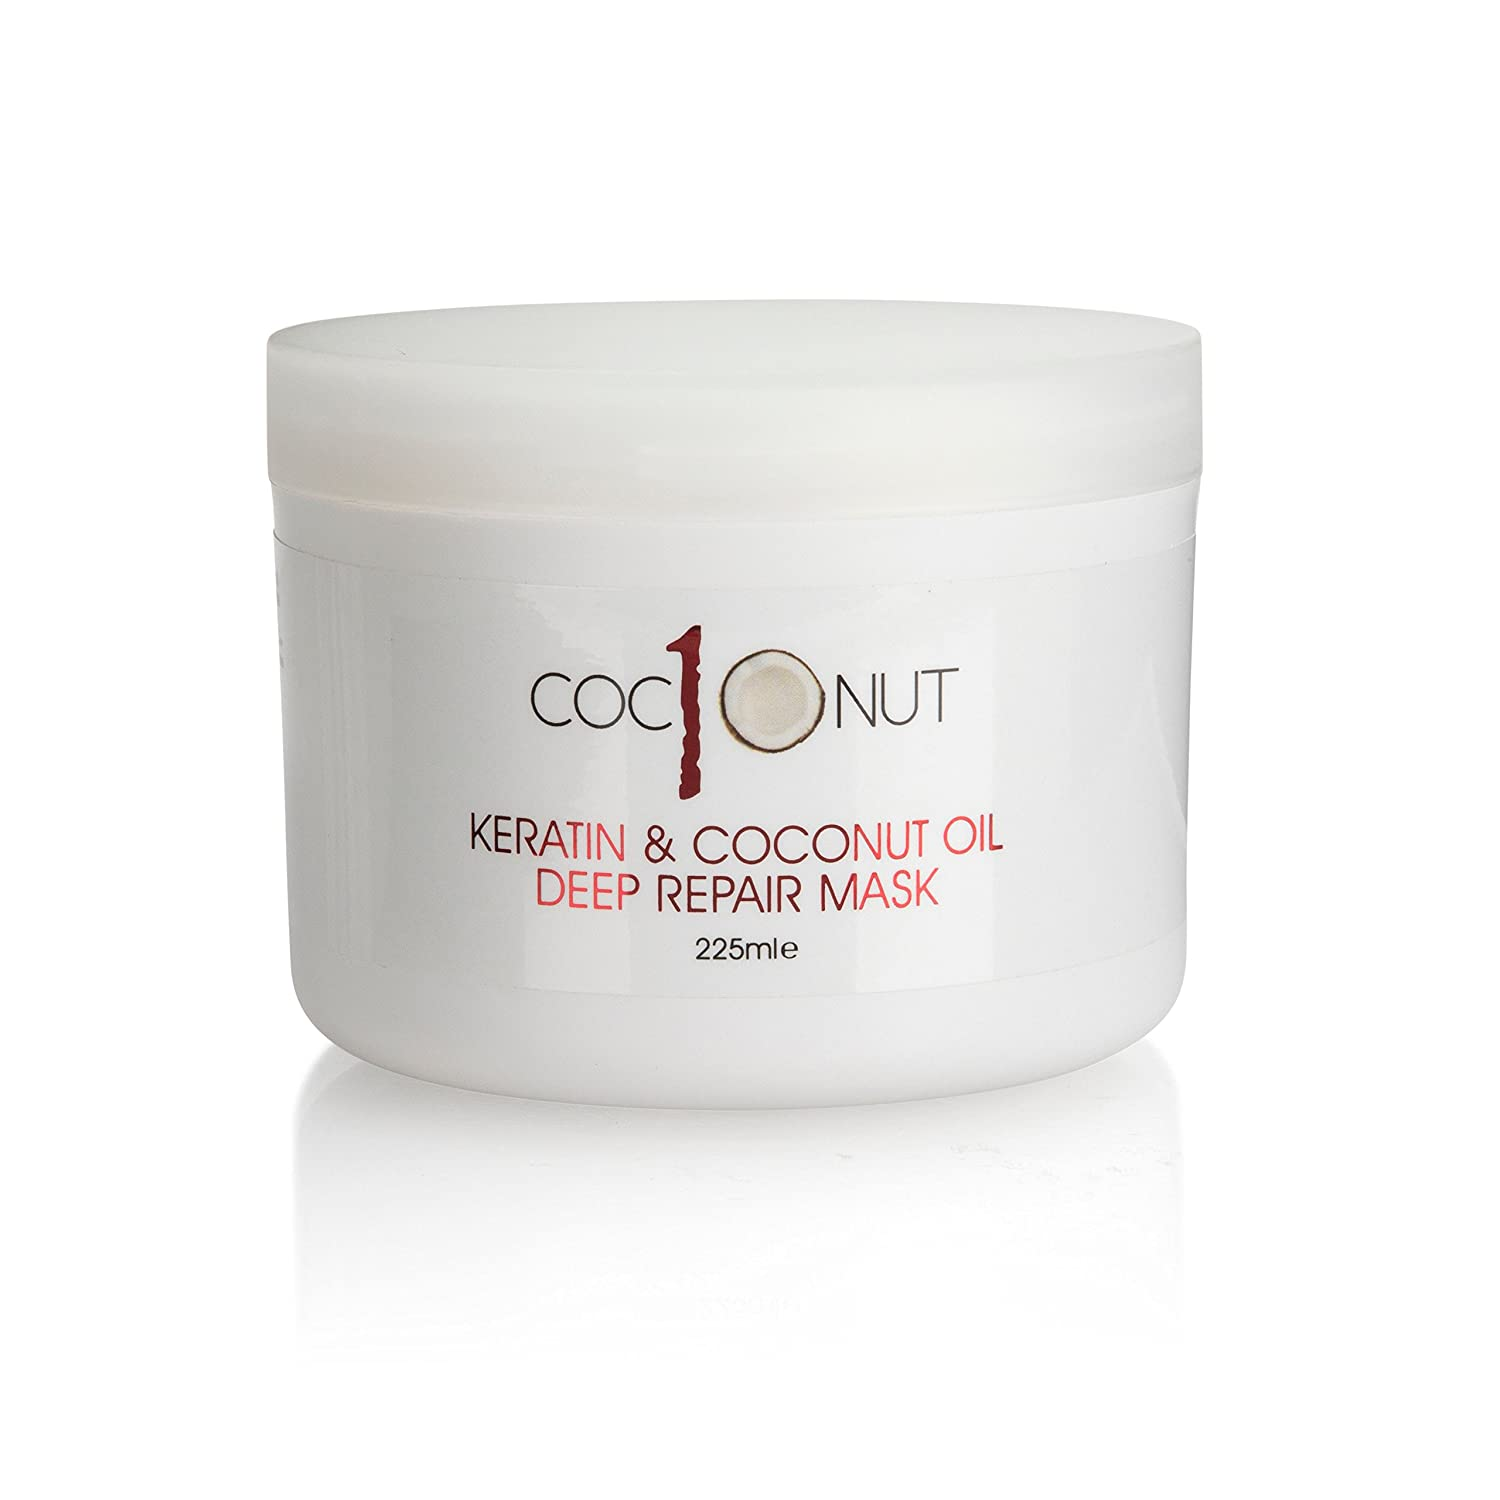 Keratin and Coconut Oil Deep Repair Hair Mask: Intensive Conditioning  Treatment for Dry/Damaged Hair